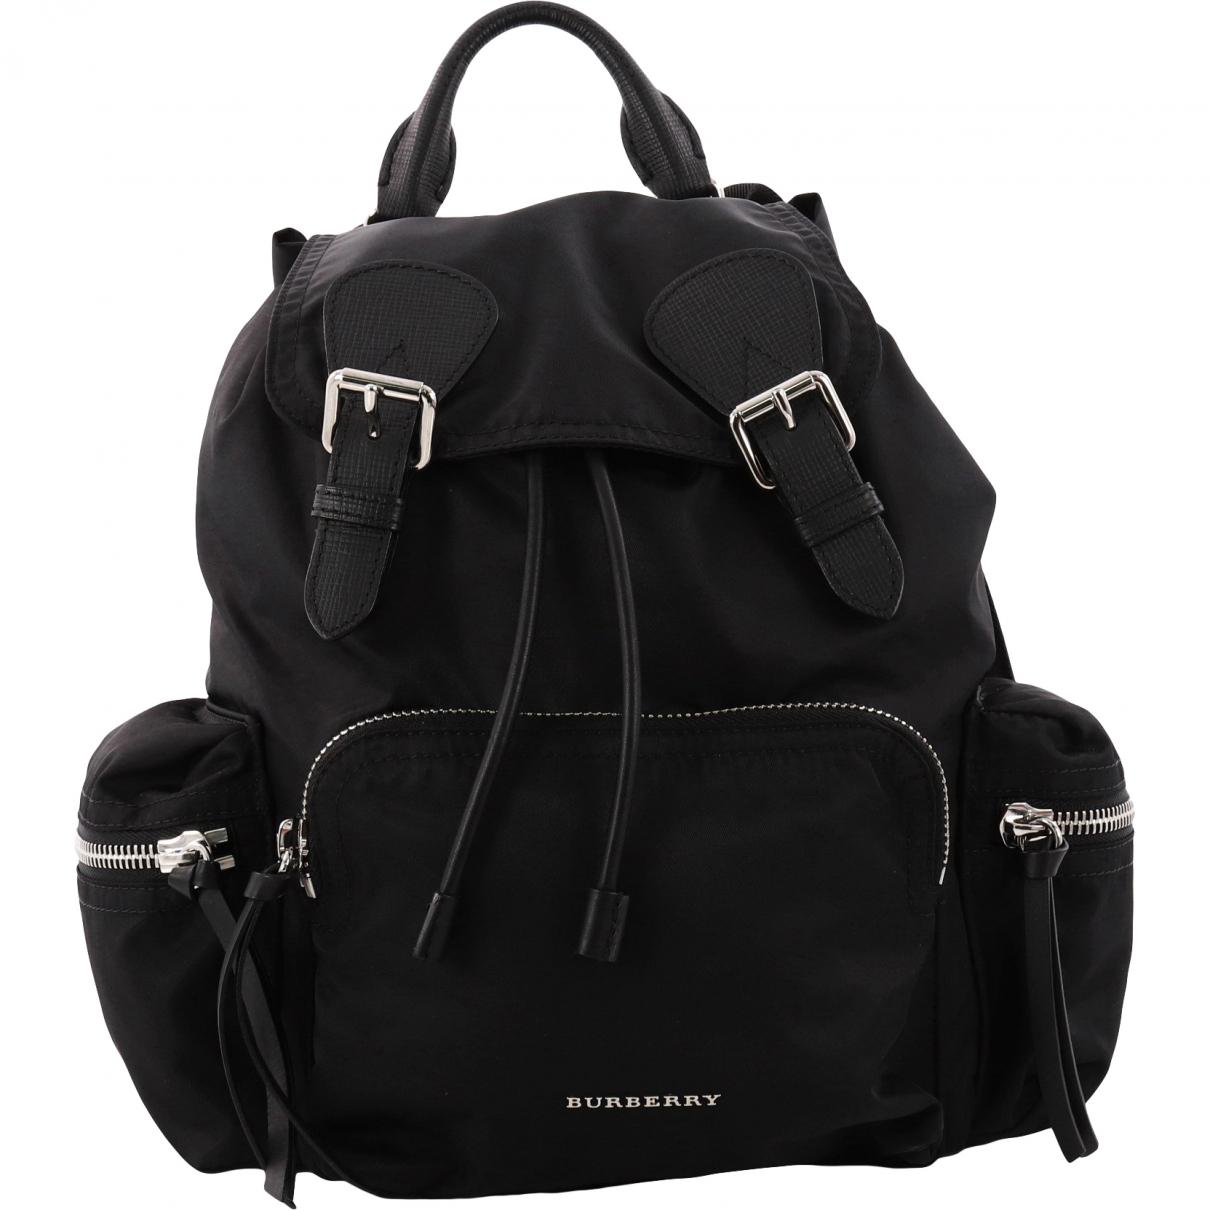 Burberry Synthetic The Rucksack Black Small Backpack